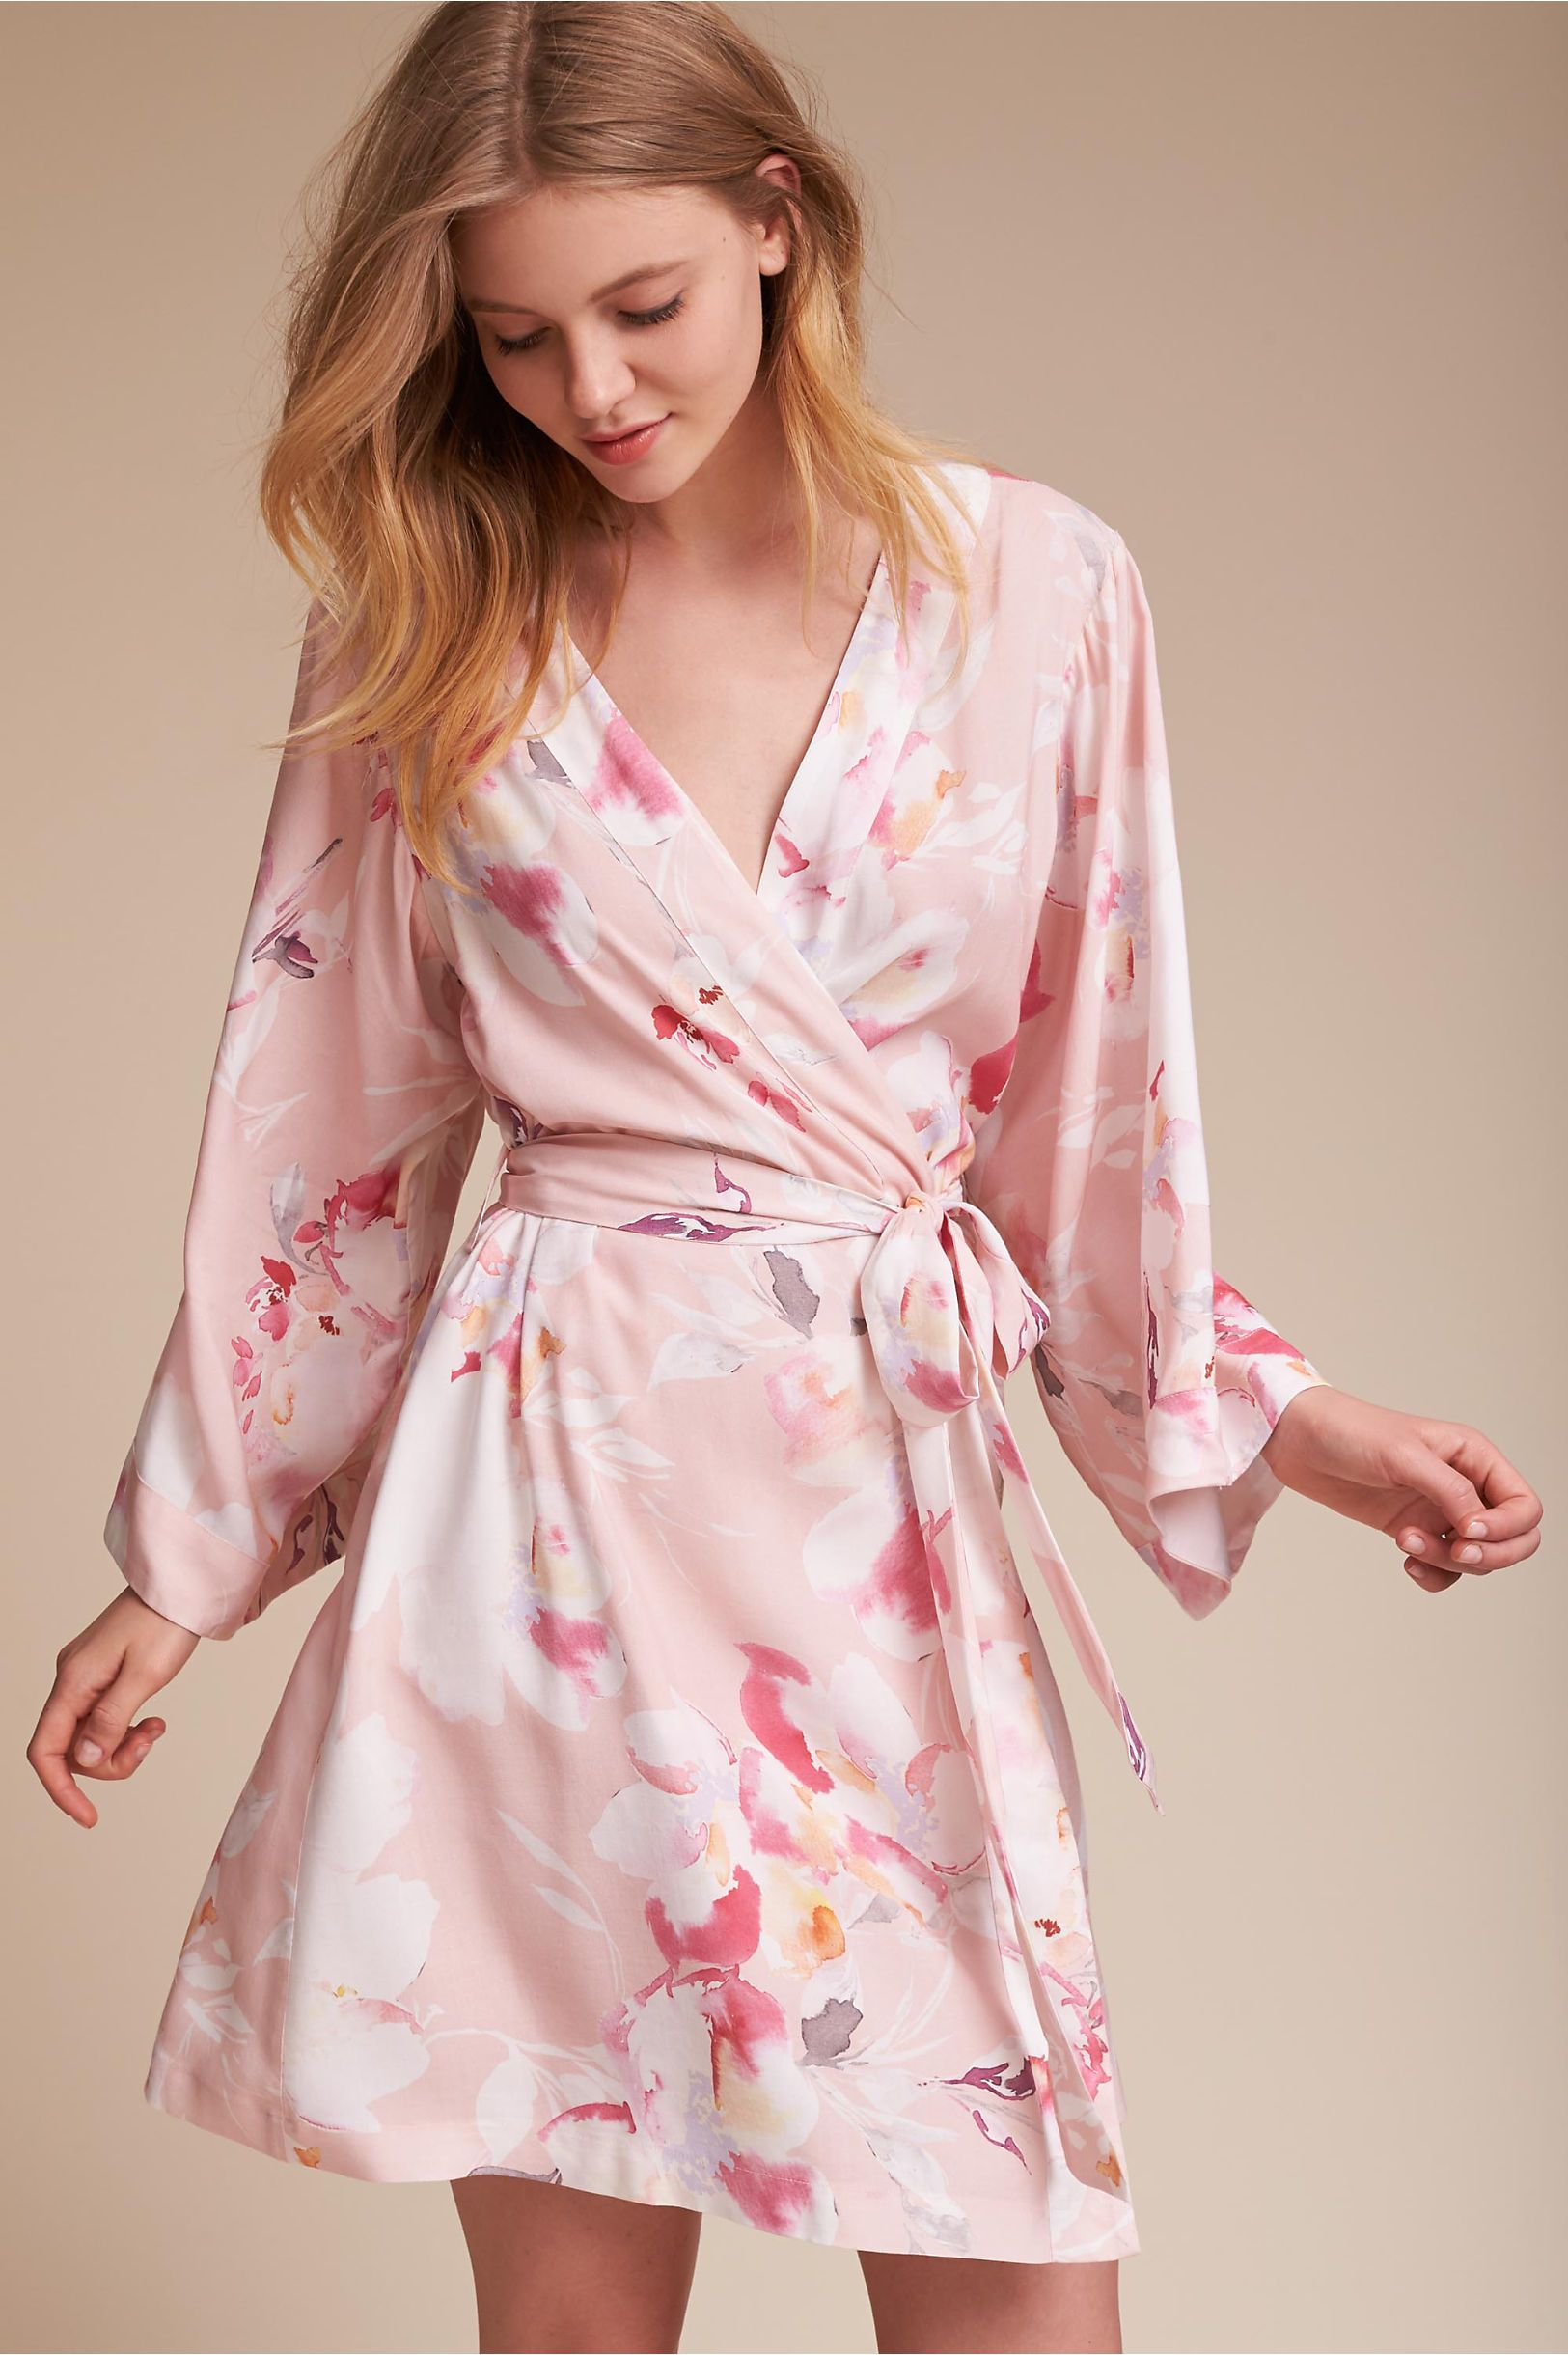 BHLDN Yumi Kim Morning Light Floral Robe in Lingerie & Swim ...